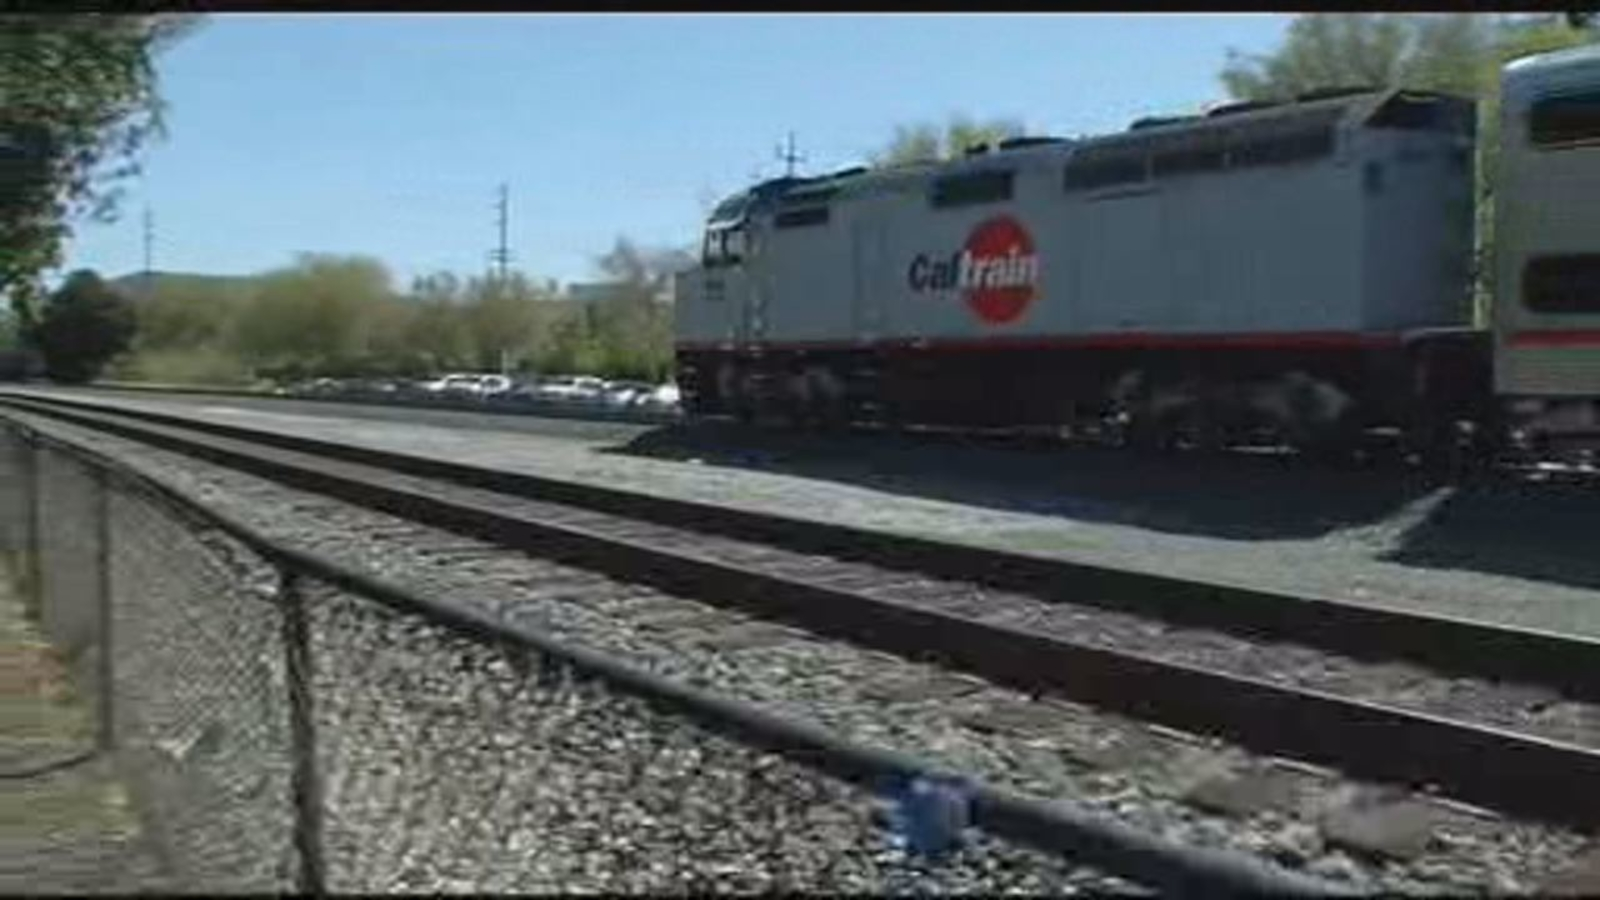 New camera system on Caltrain tracks in Palo Alto could help deter suicides